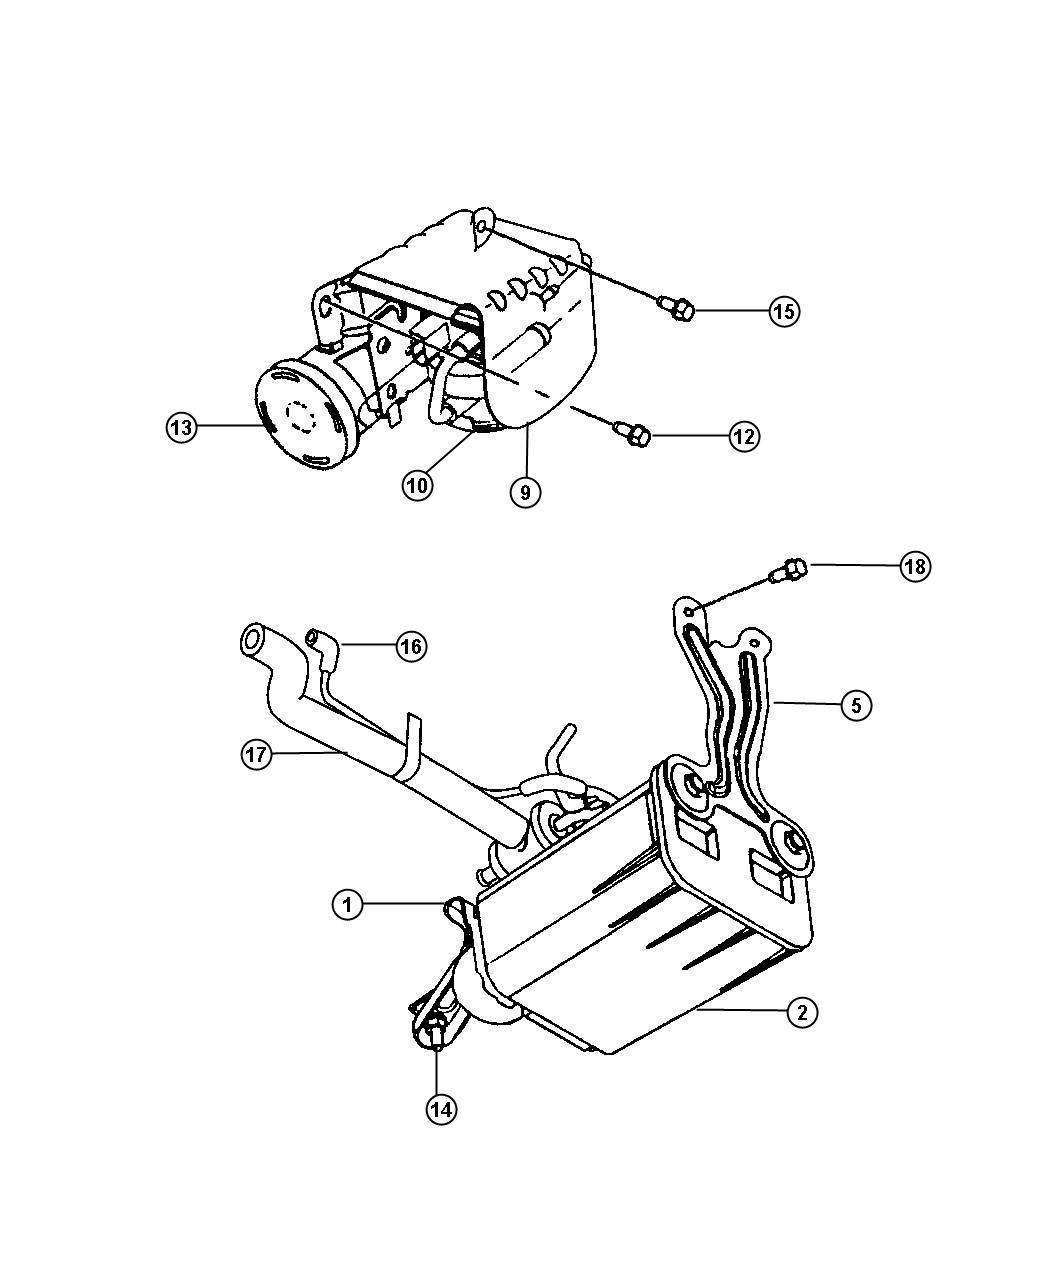 Service manual [How To Remove Vapor Canister 2000 Plymouth